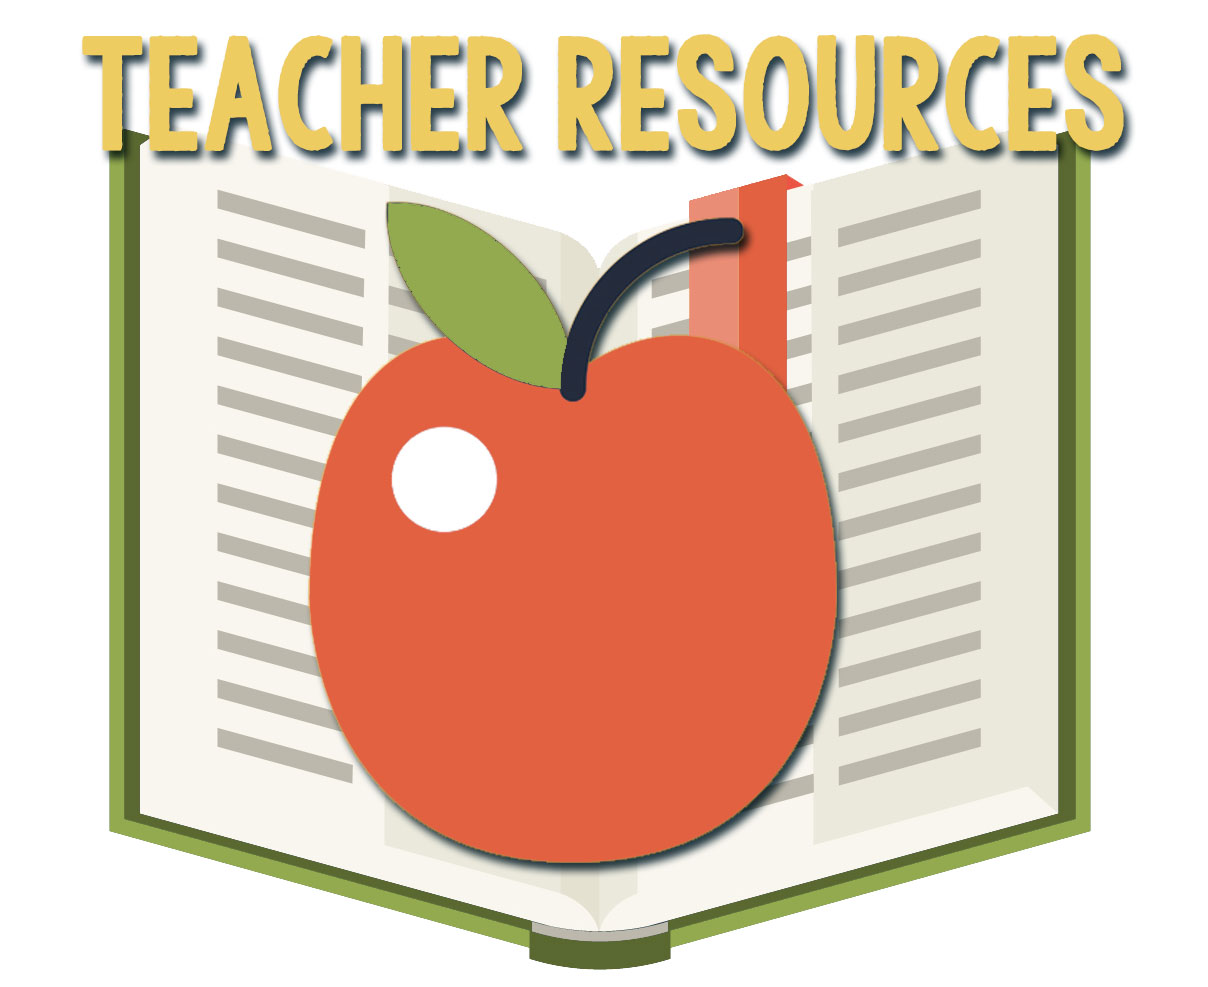 Seminary Teacher Resources